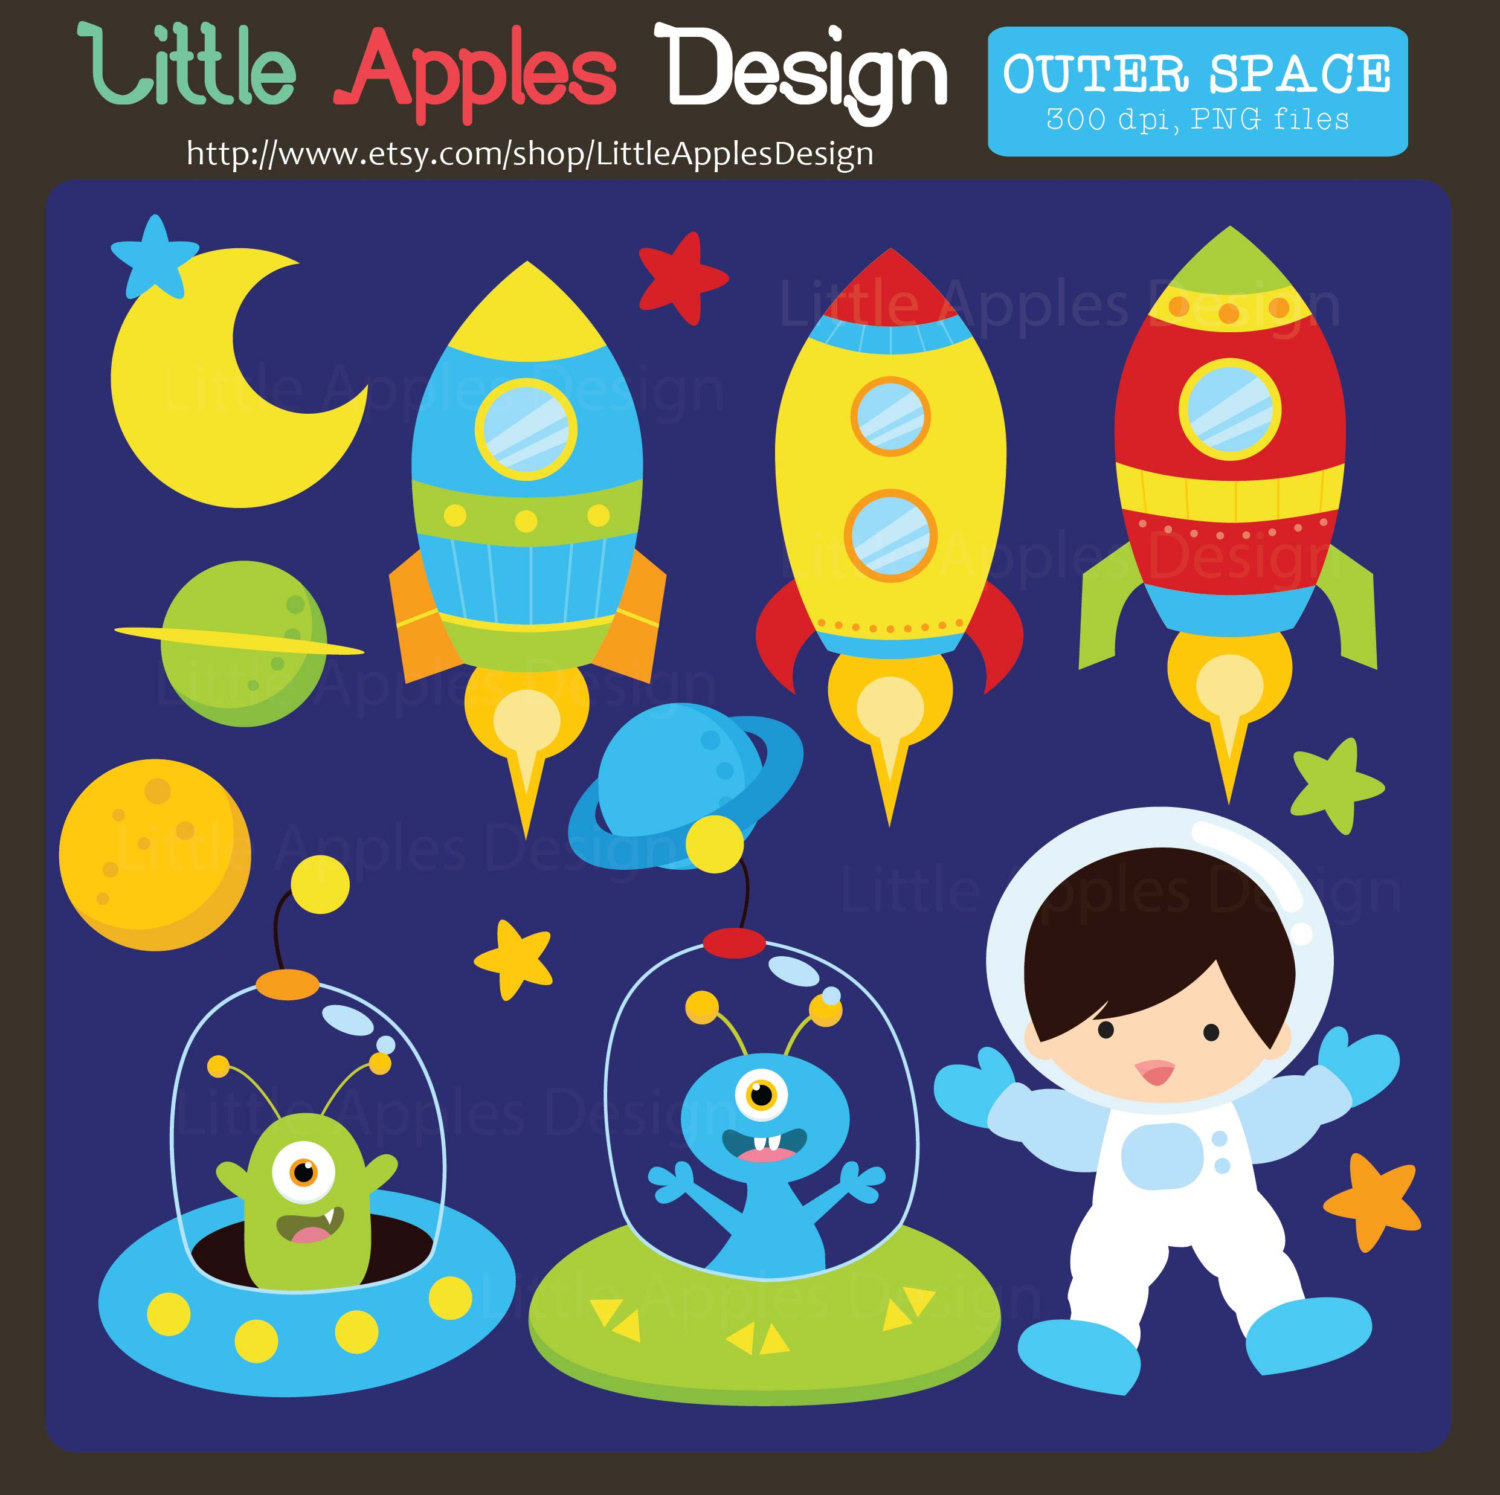 Science clipart outer space Clipart Outer Art / Space